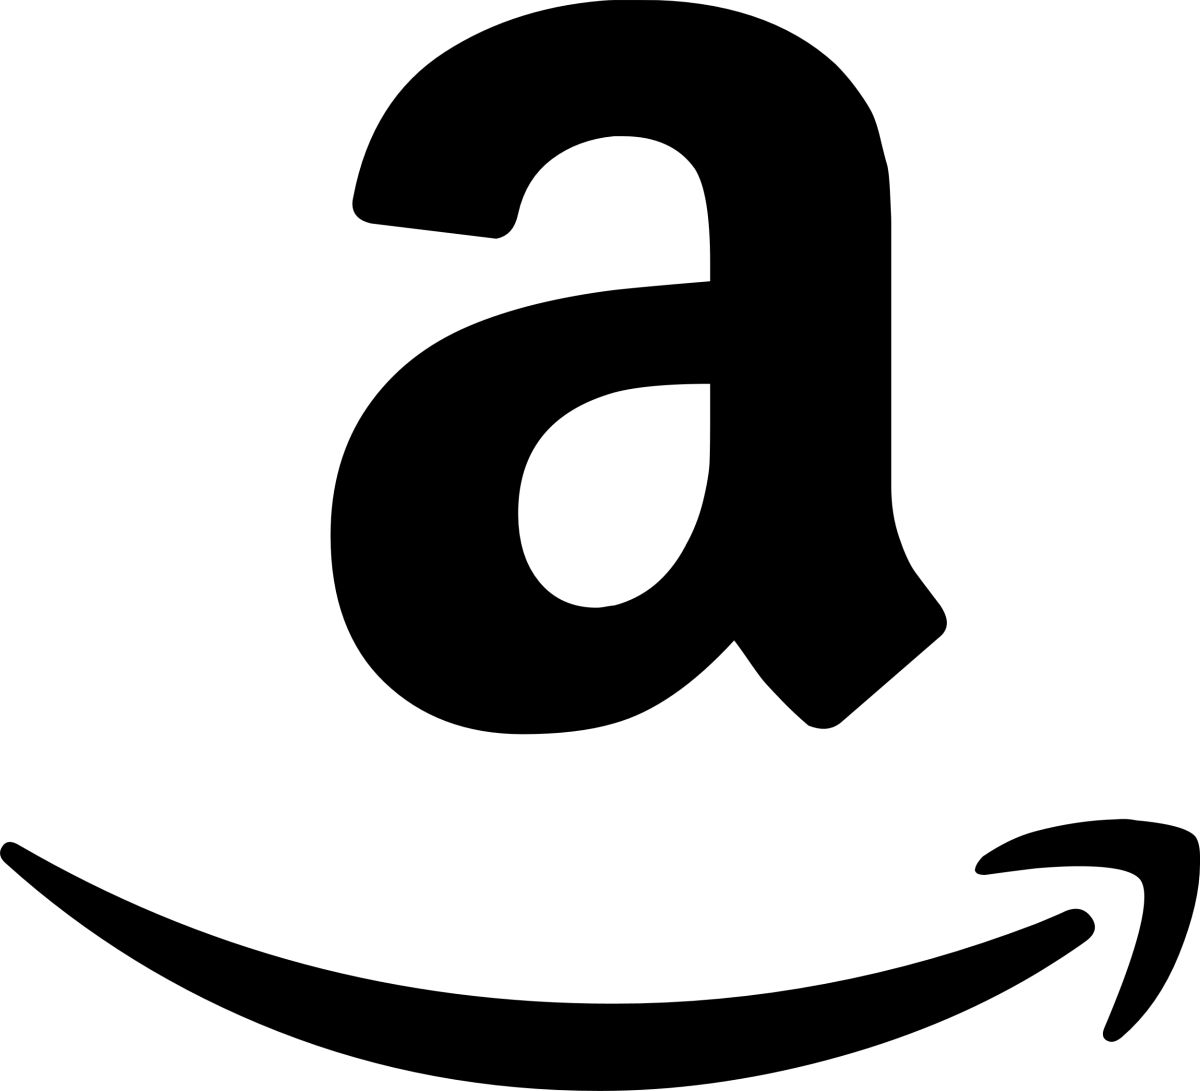 Bücher - Symbol Amazon